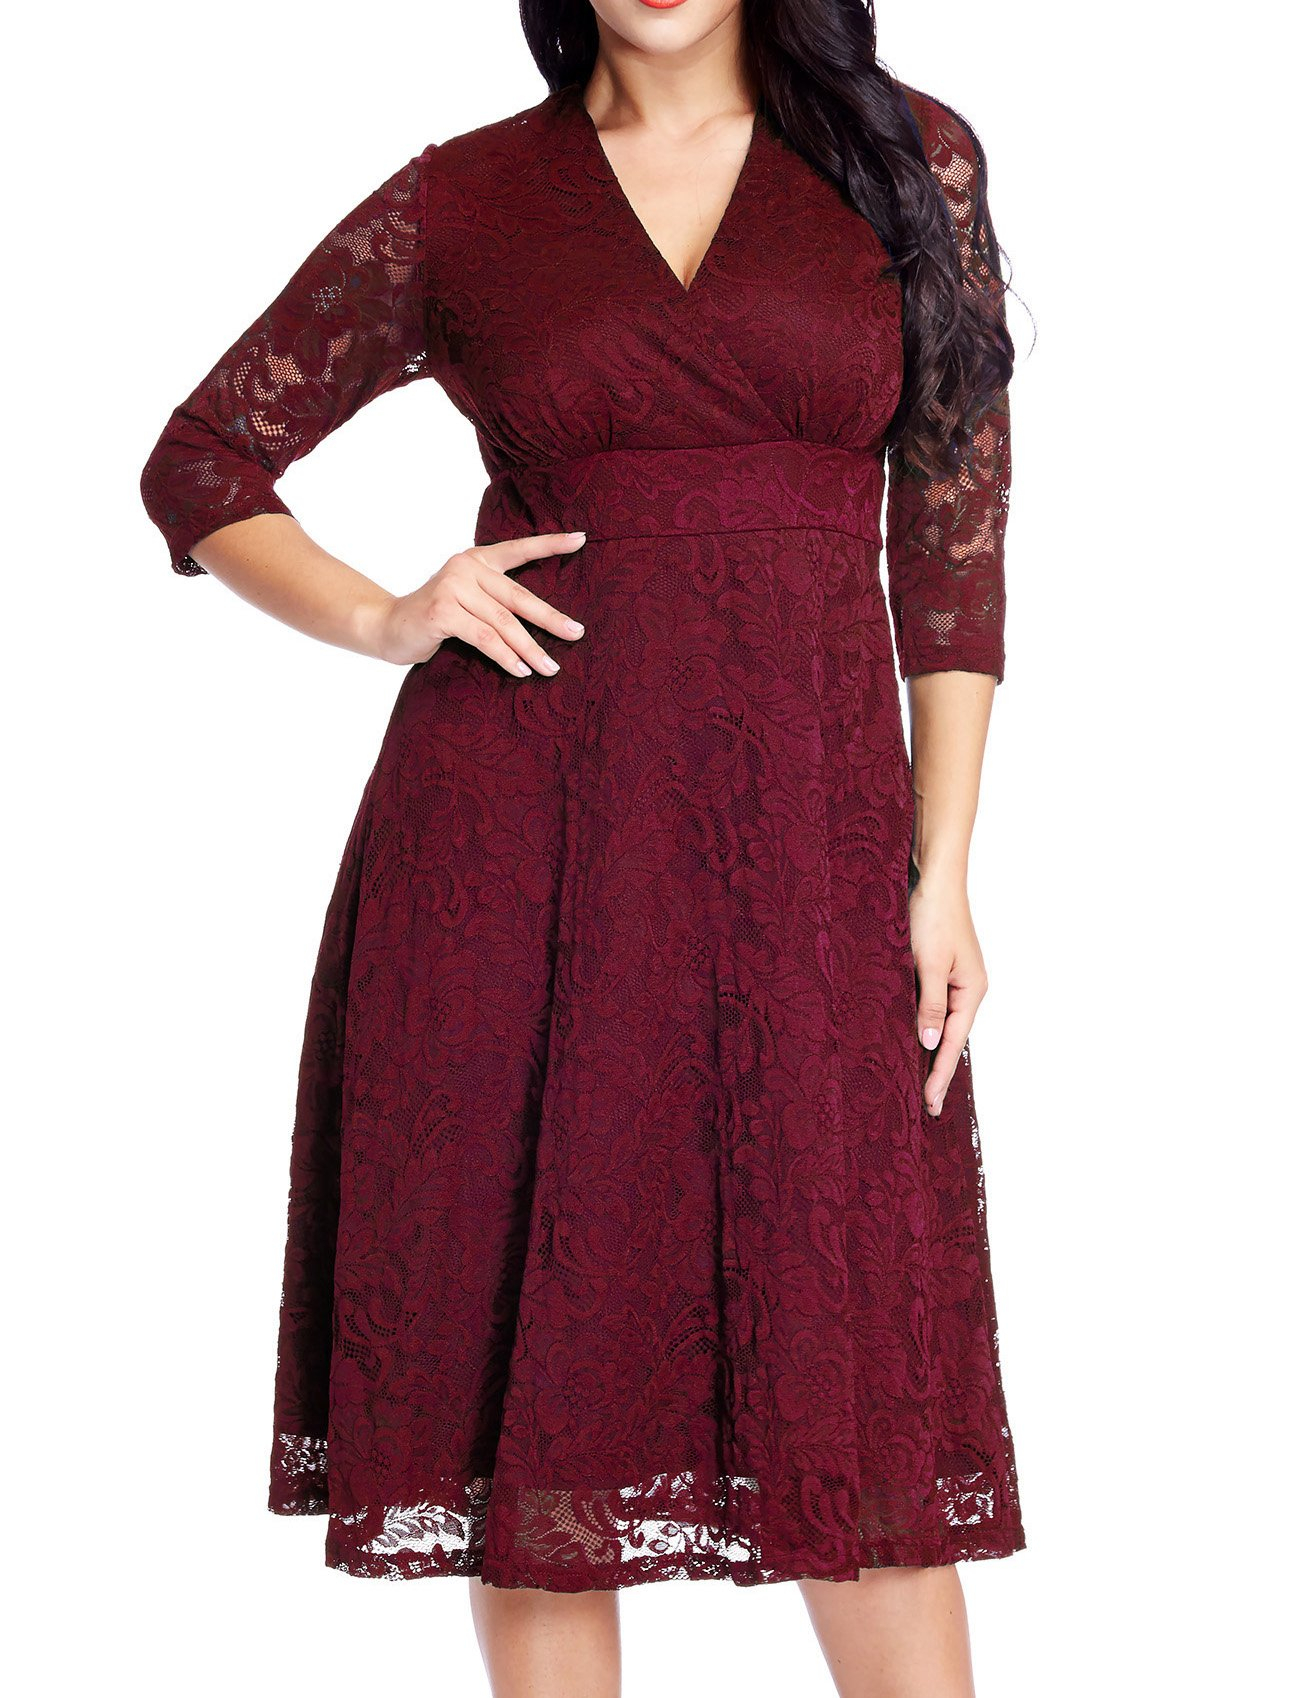 GRAPENT Women's Lace Plus Size Mother Of The Bride Skater Dress Bridal Wedding Party Maroon 16W